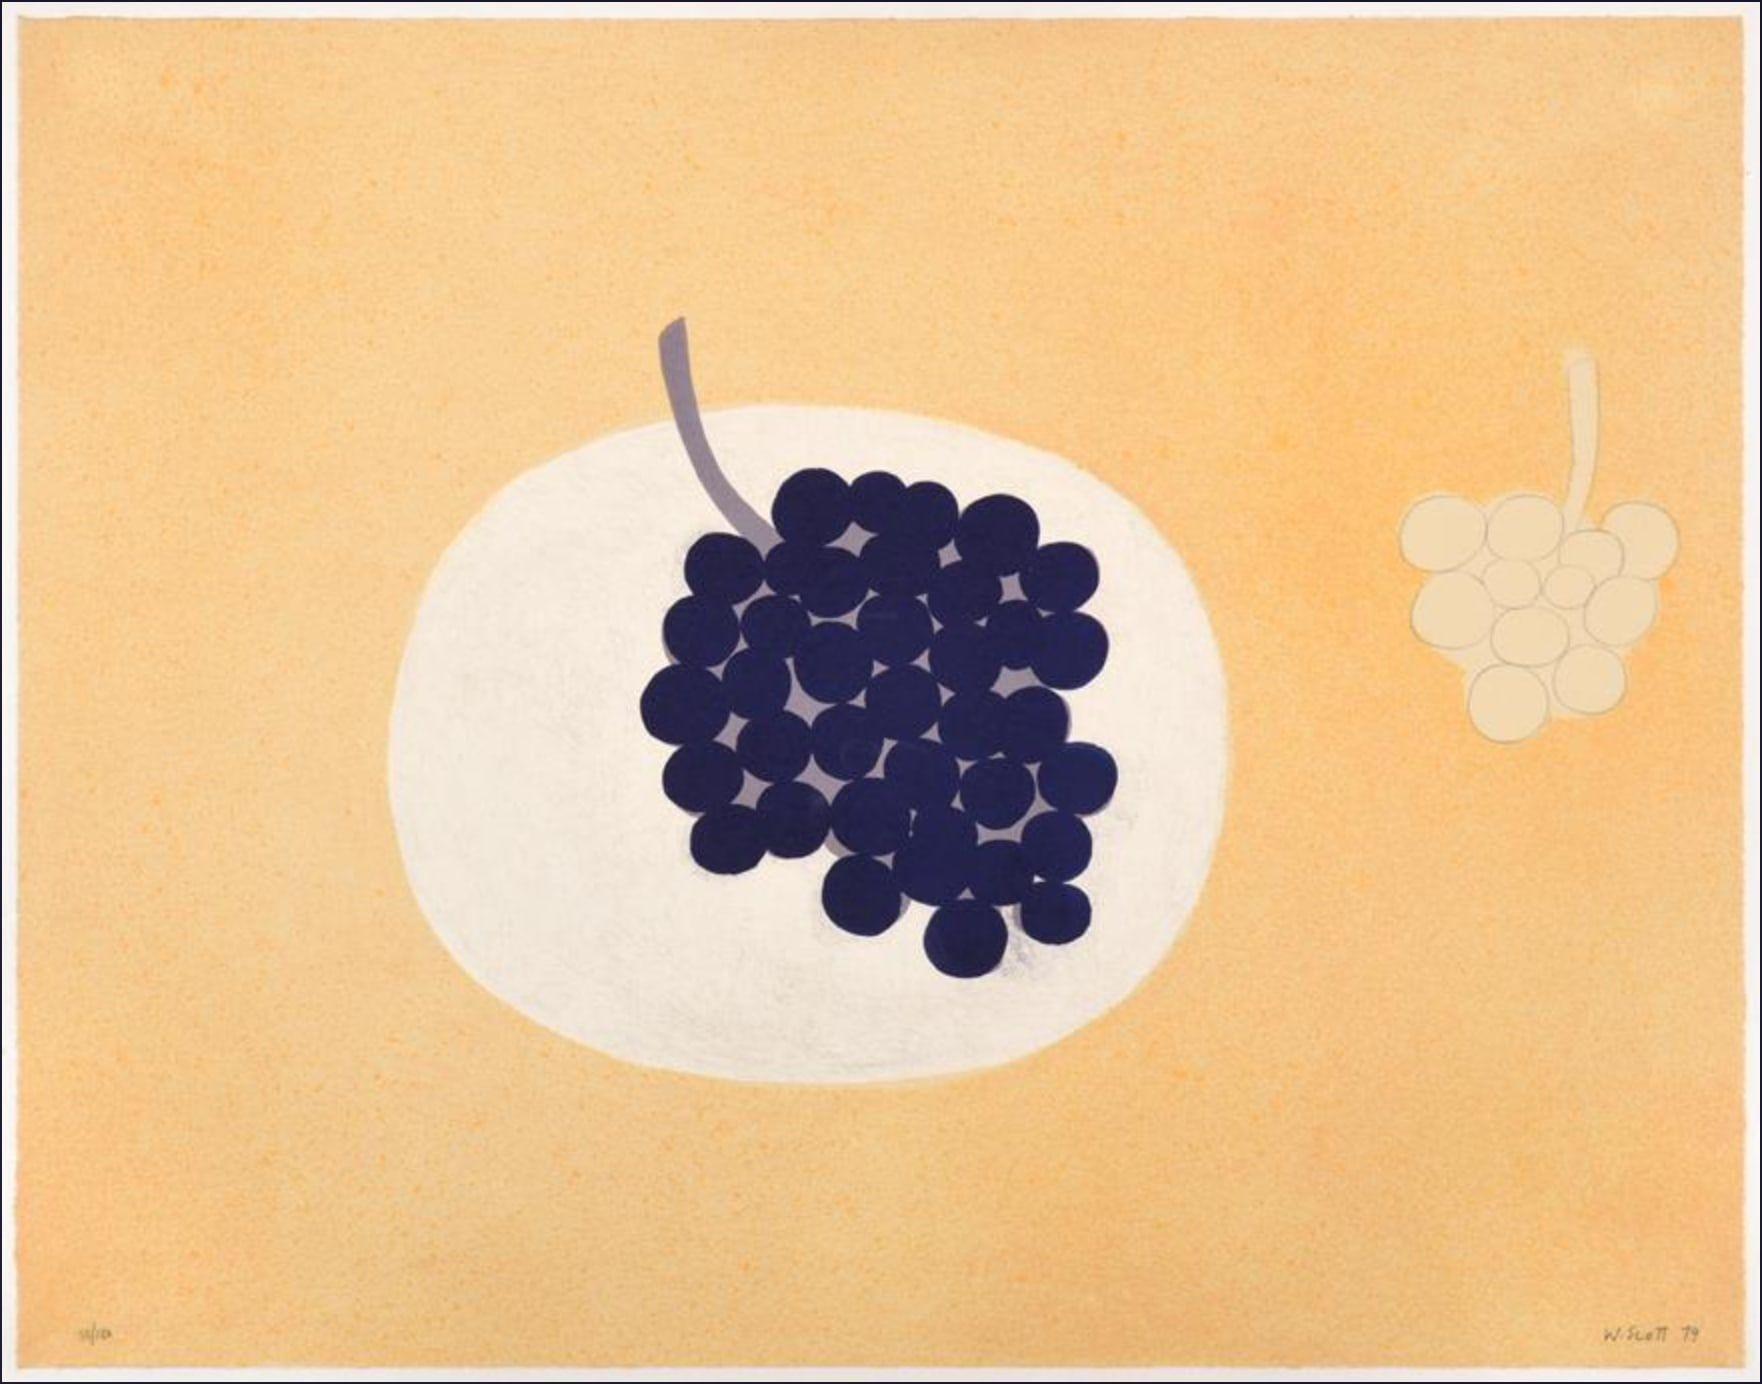 "<span class=""link fancybox-details-link""><a href=""/artists/63-william-scott-ra/works/7555-william-scott-ra-grapes-1979/"">View Detail Page</a></span><div class=""artist""><strong>William Scott RA</strong></div> 1913–1989 <div class=""title""><em>Grapes</em>, 1979</div> <div class=""signed_and_dated"">signed, dated, numbered from the edition of 150 in pencil, </div> <div class=""medium"">lithograph in colours on wove paper<br /> </div> <div class=""dimensions"">sheet size: h 49.5 x w 64 cm</div> <div class=""edition_details"">edition 50 of 150</div><div class=""copyright_line"">Copyright The Artist</div>"